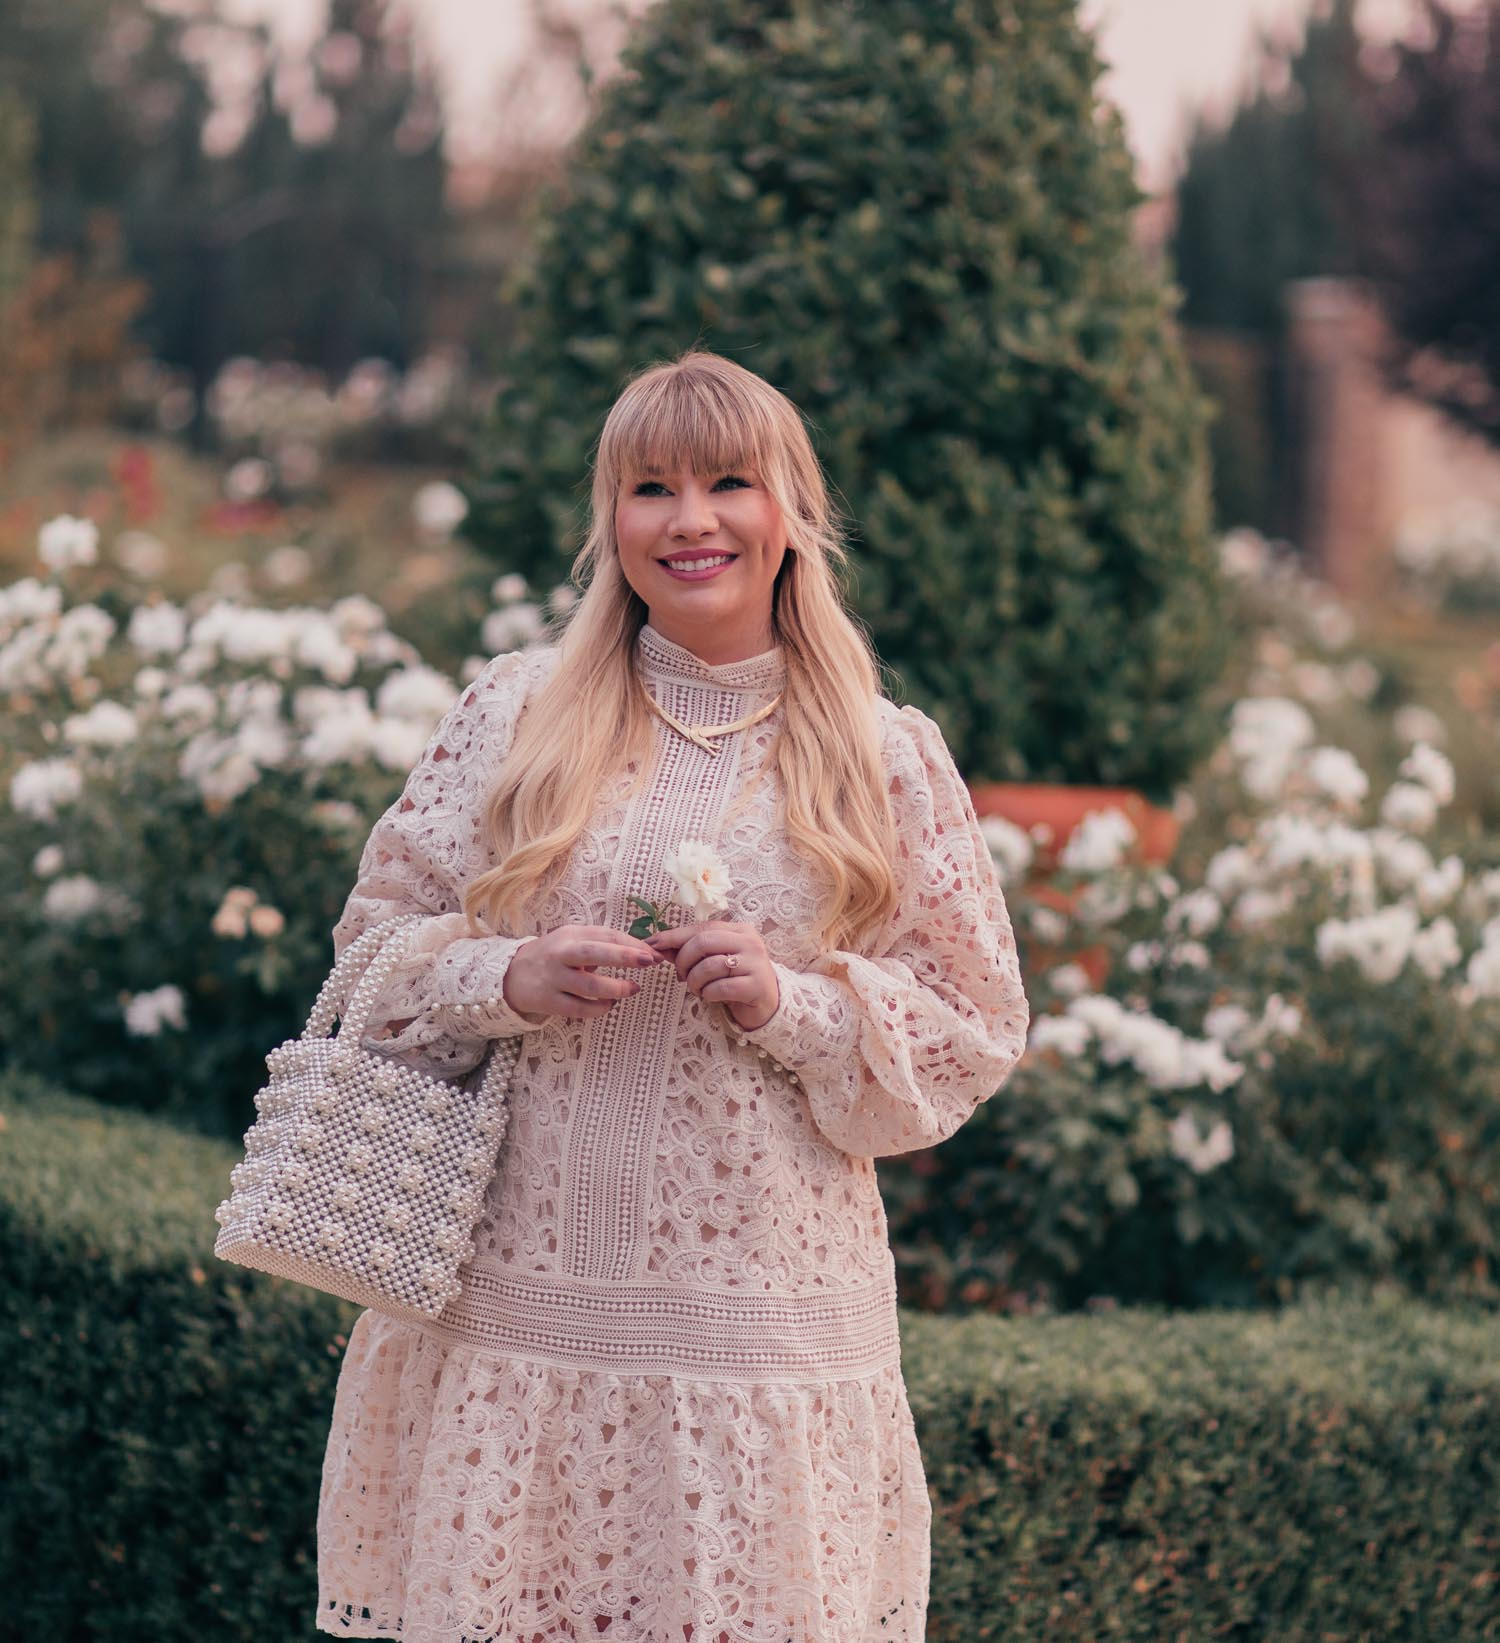 Fashion Blogger Elizabeth Hugen of Lizzie in Lace shares a Feminine White Monochrome Outfit for Fall and a lace H&M dress